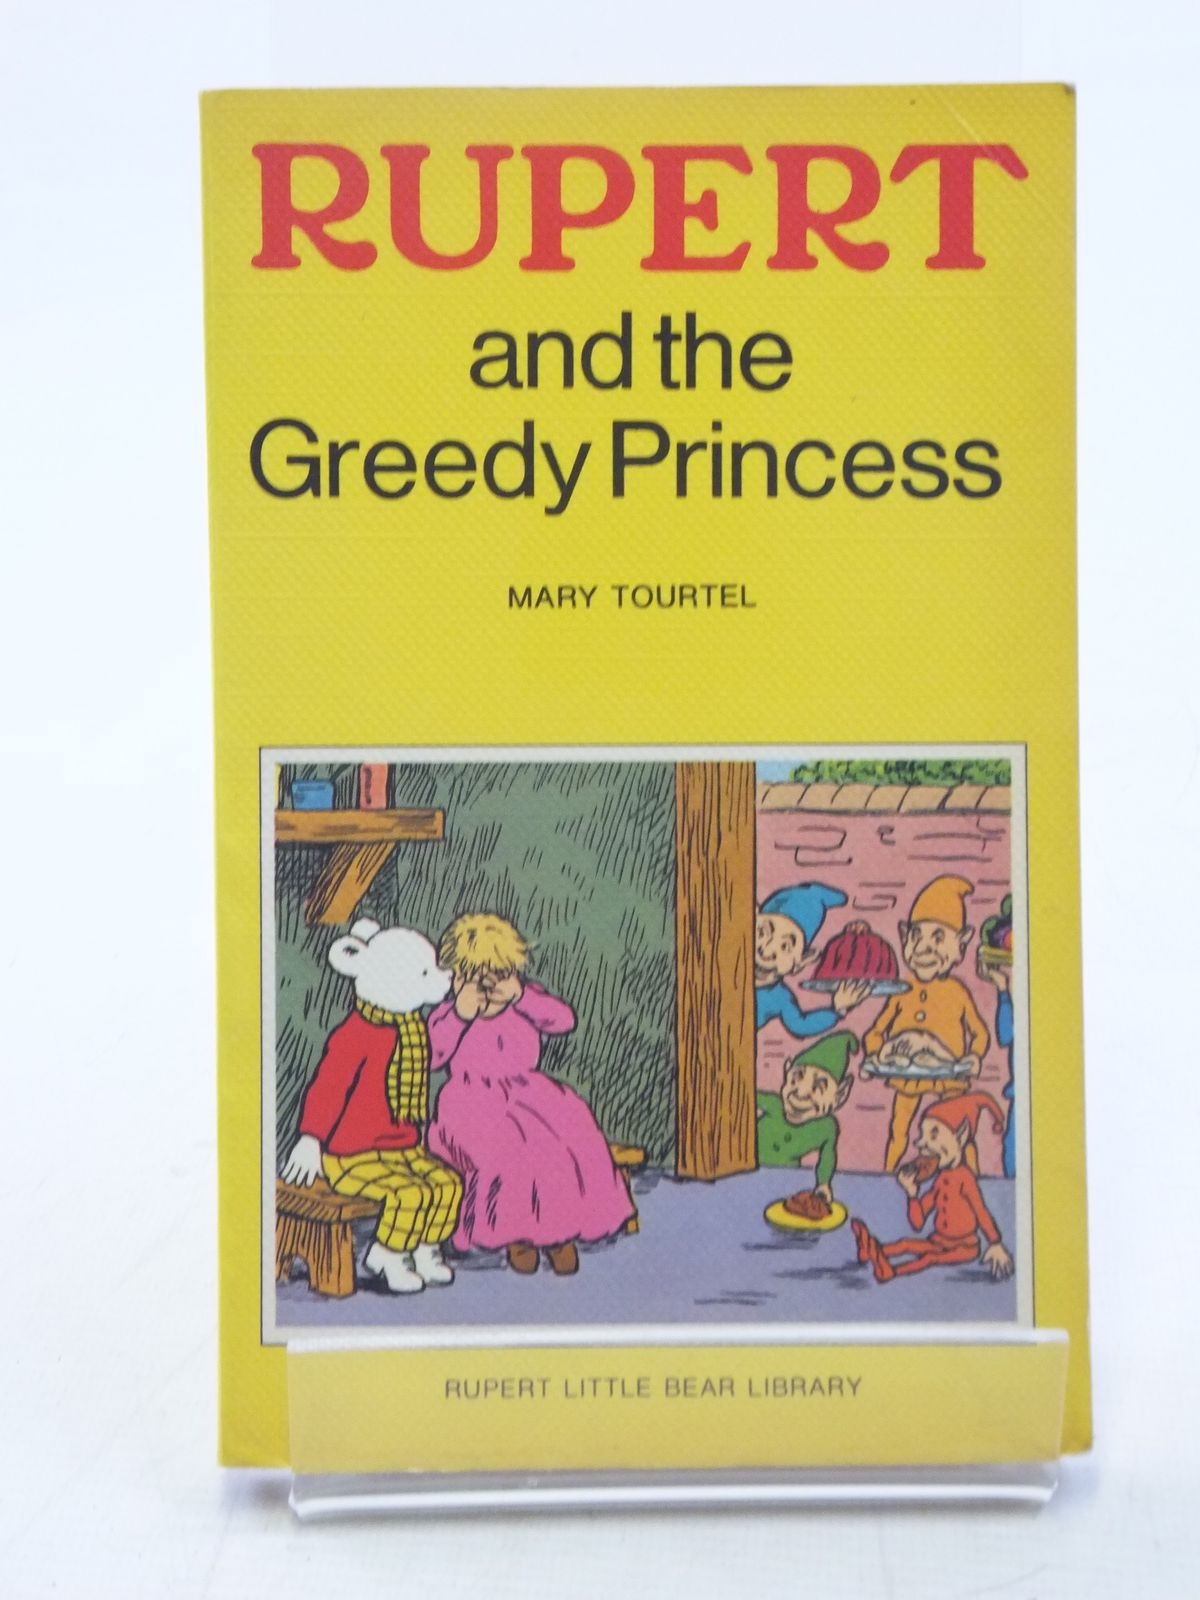 Photo of RUPERT AND THE GREEDY PRINCESS - RUPERT LITTLE BEAR LIBRARY No. 11 (WOOLWORTH) written by Tourtel, Mary illustrated by Tourtel, Mary published by Sampson Low, Marston & Co. Ltd. (STOCK CODE: 2117965)  for sale by Stella & Rose's Books